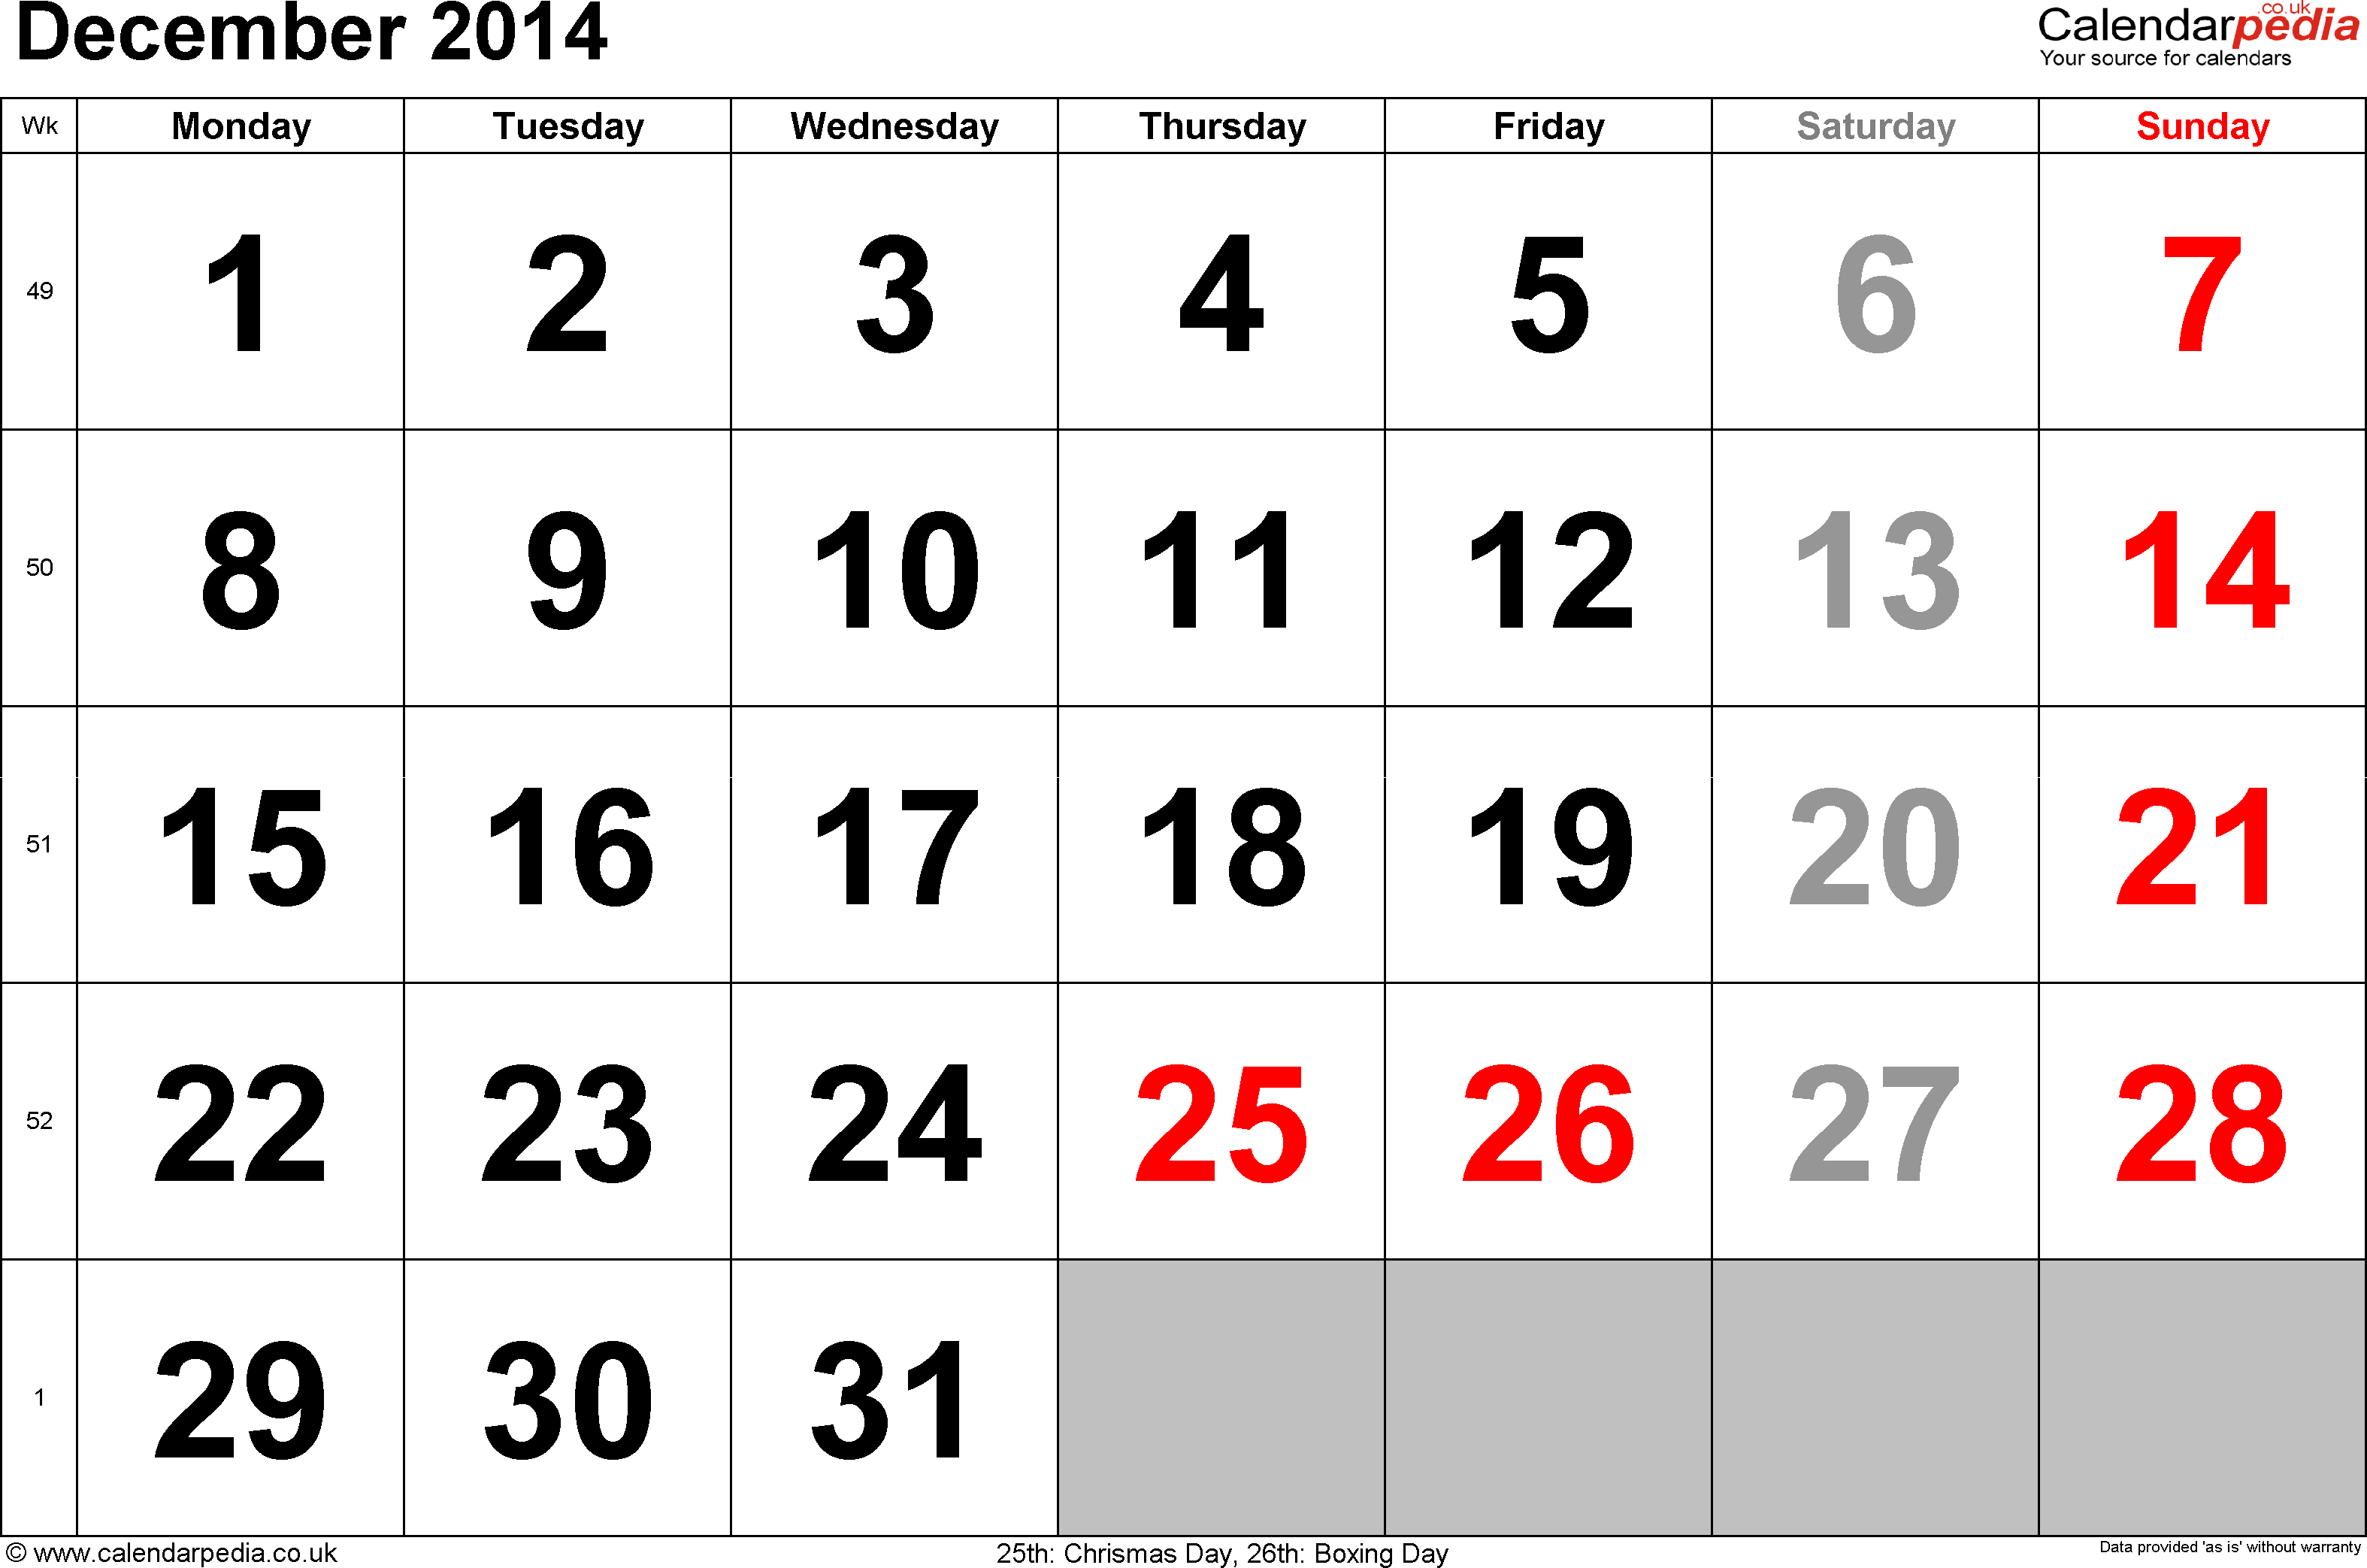 Calendar December 2014, landscape orientation, large numerals, 1 page, with UK bank holidays and week numbers